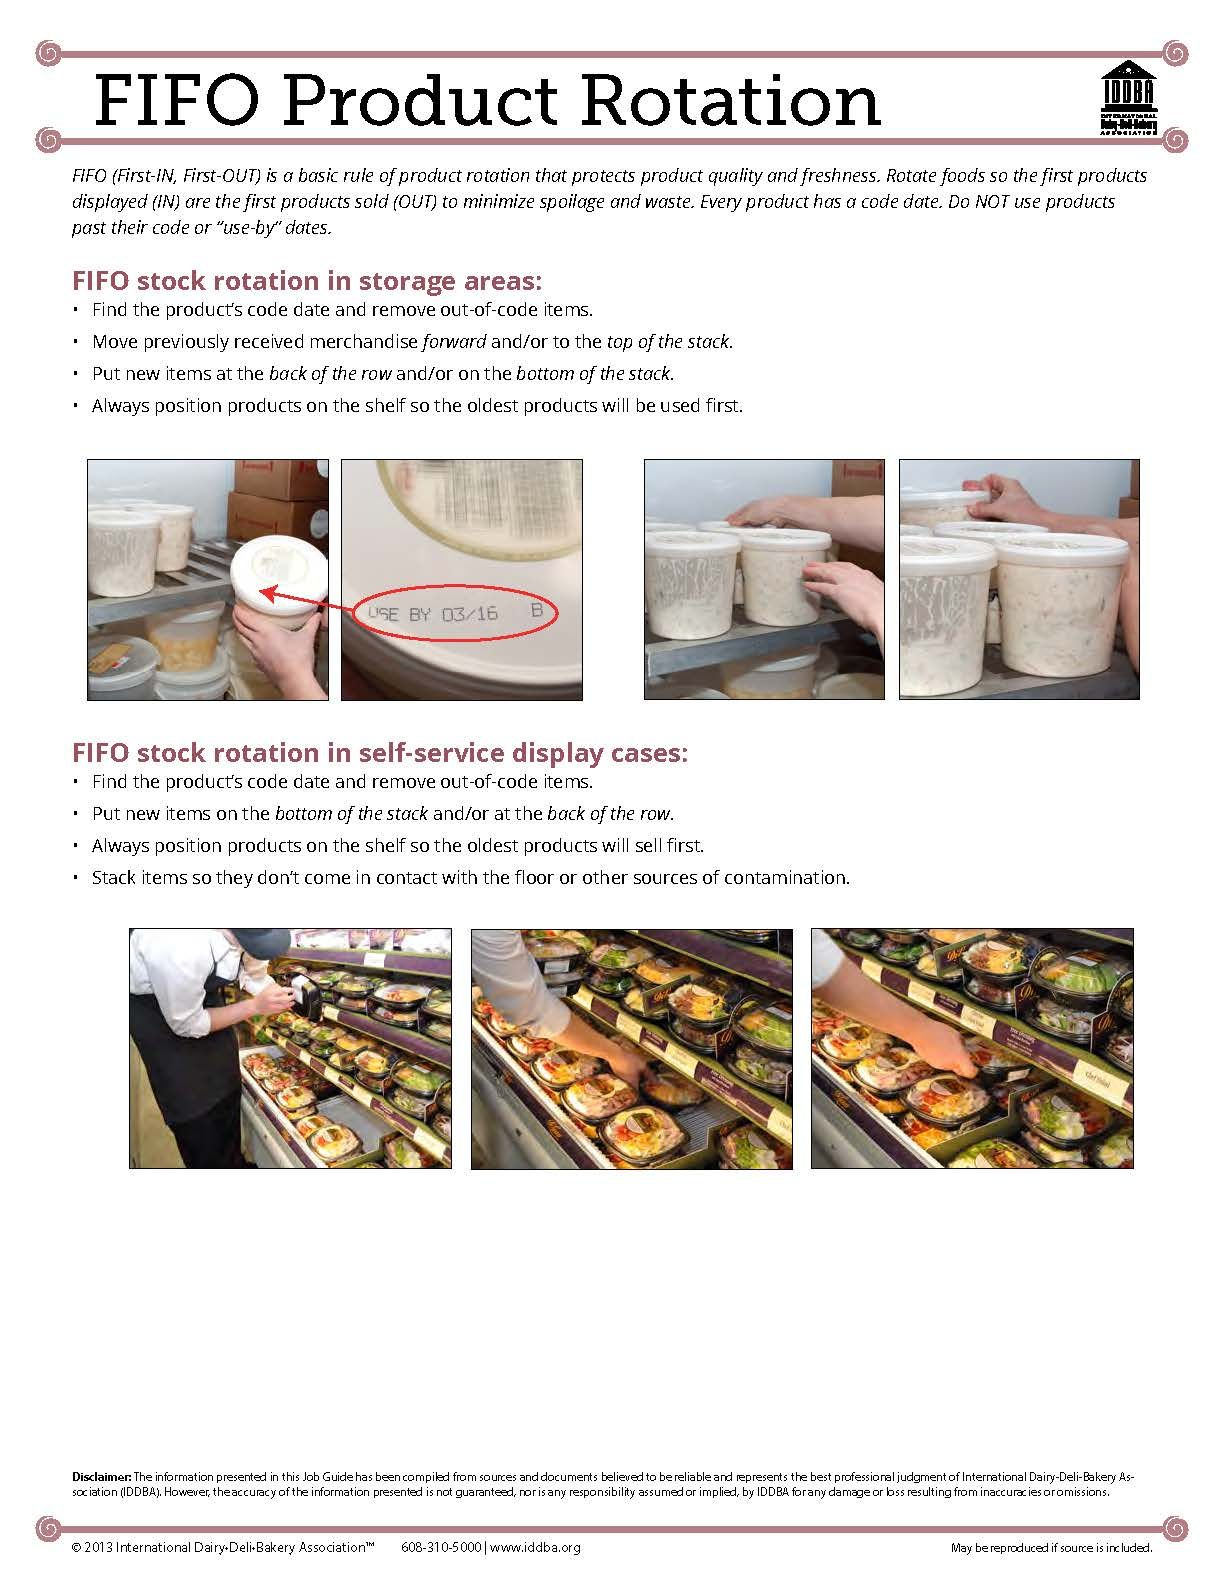 tcs food safety servsafe exam blog food safety food safety first in first out fifo product rotation develop your staff